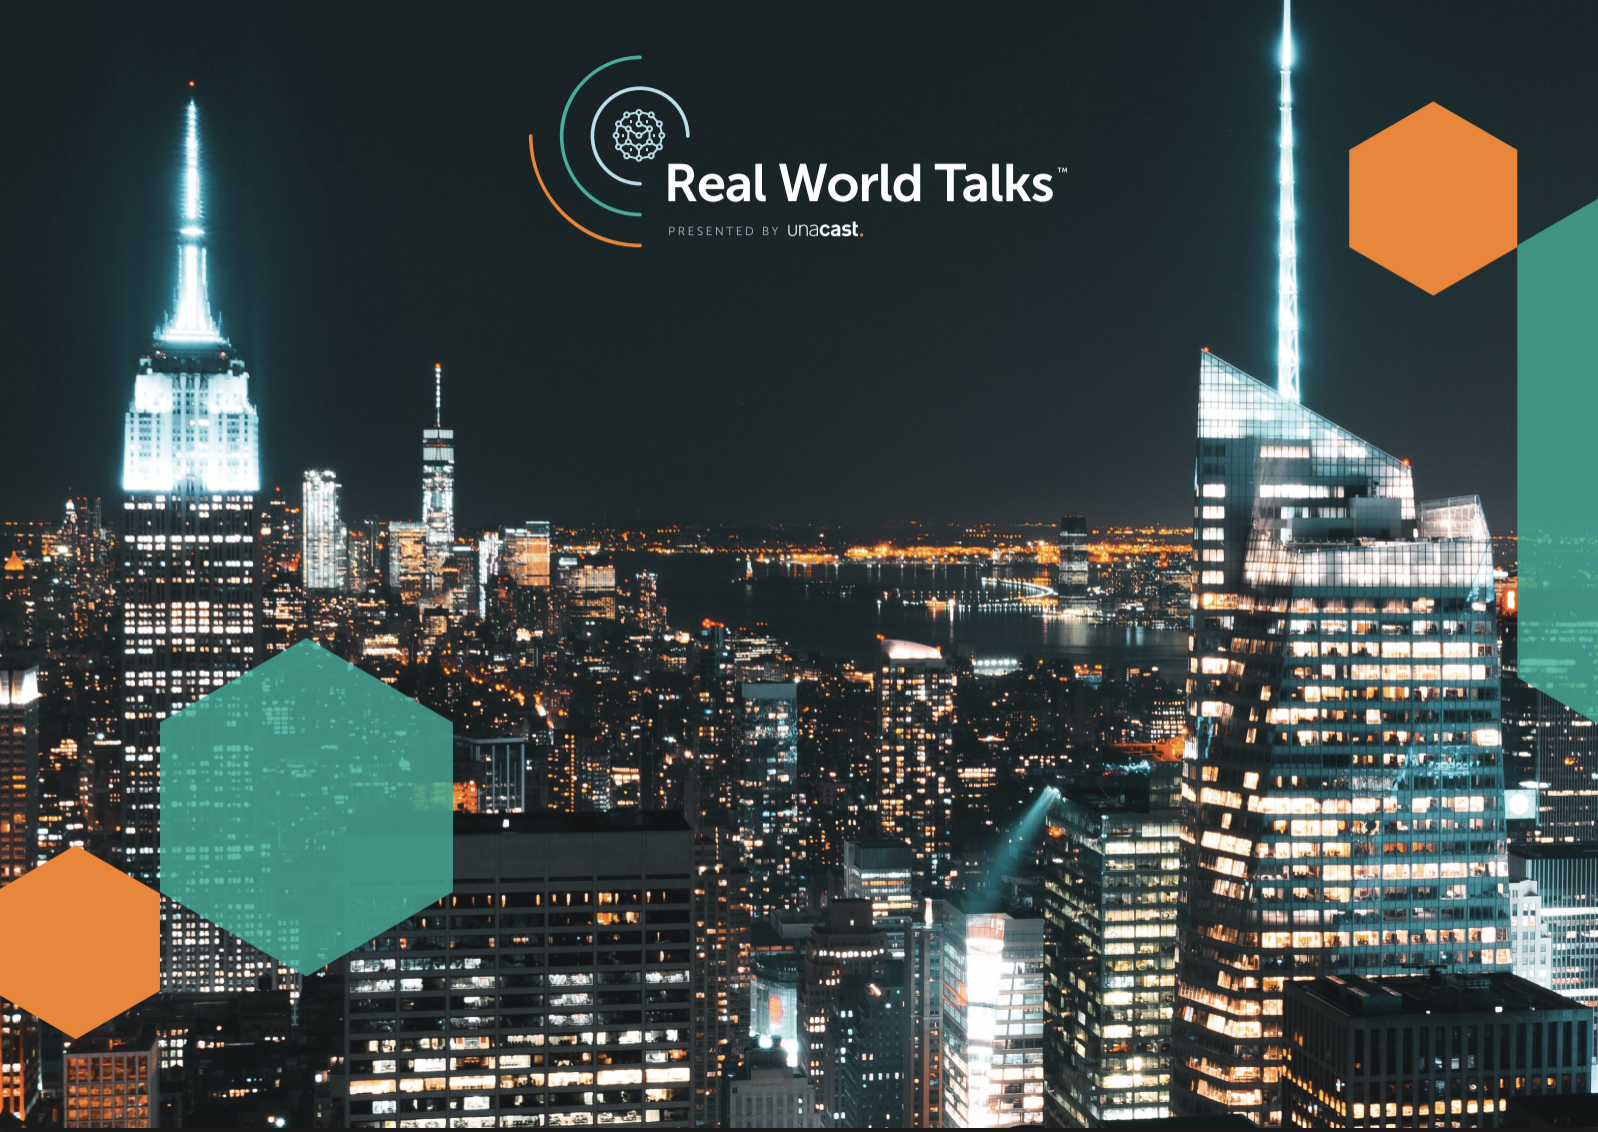 Check it Out: The Real World Talks Agenda is Here